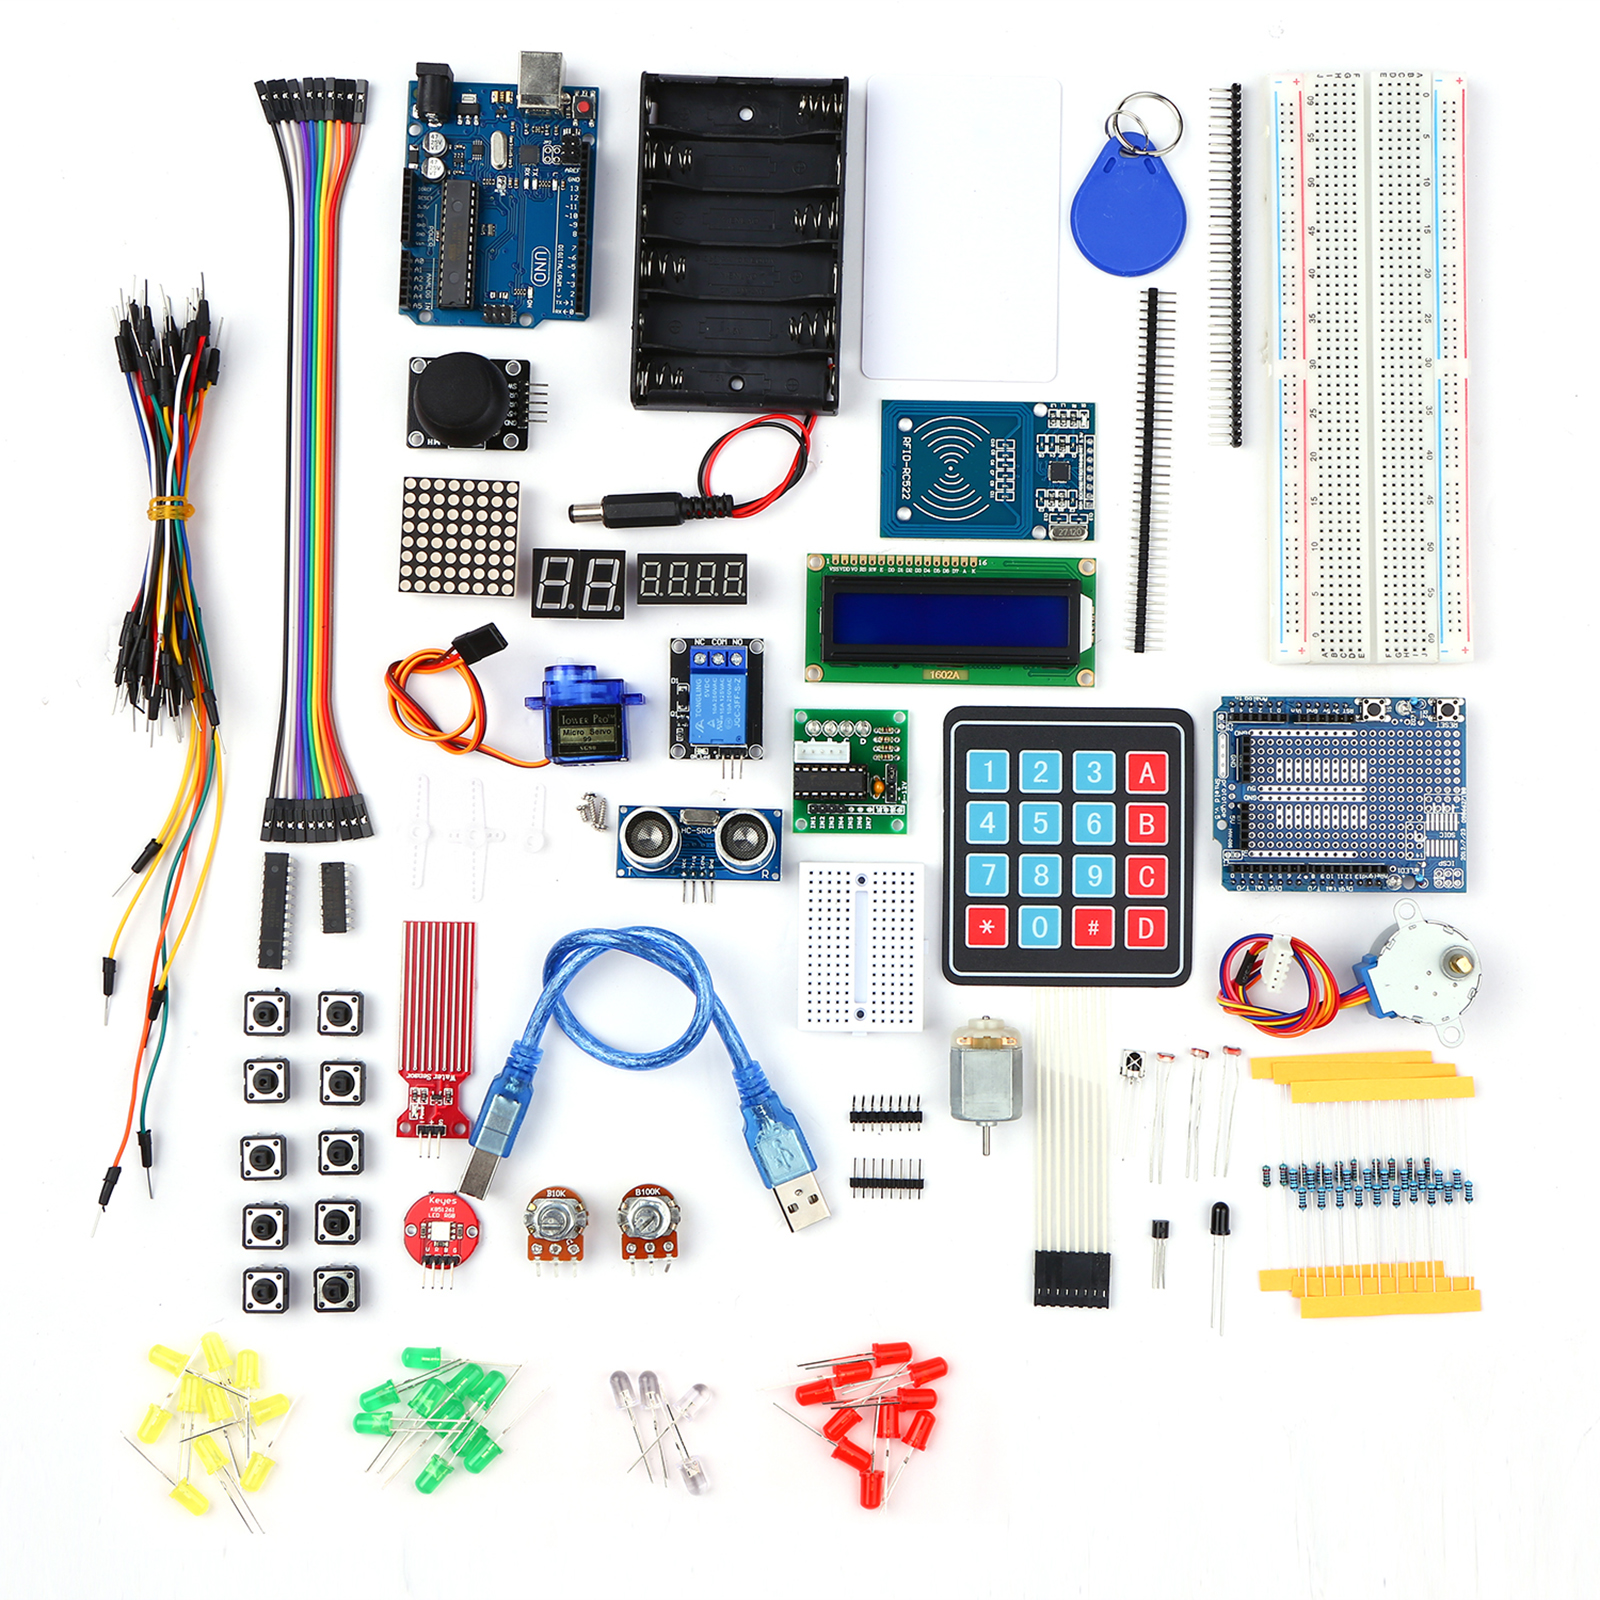 DIY Electronic Starter Kits Electronic Project Beginner Learning Kit with Sensors Stepper Motor Breadboard Electronics Component